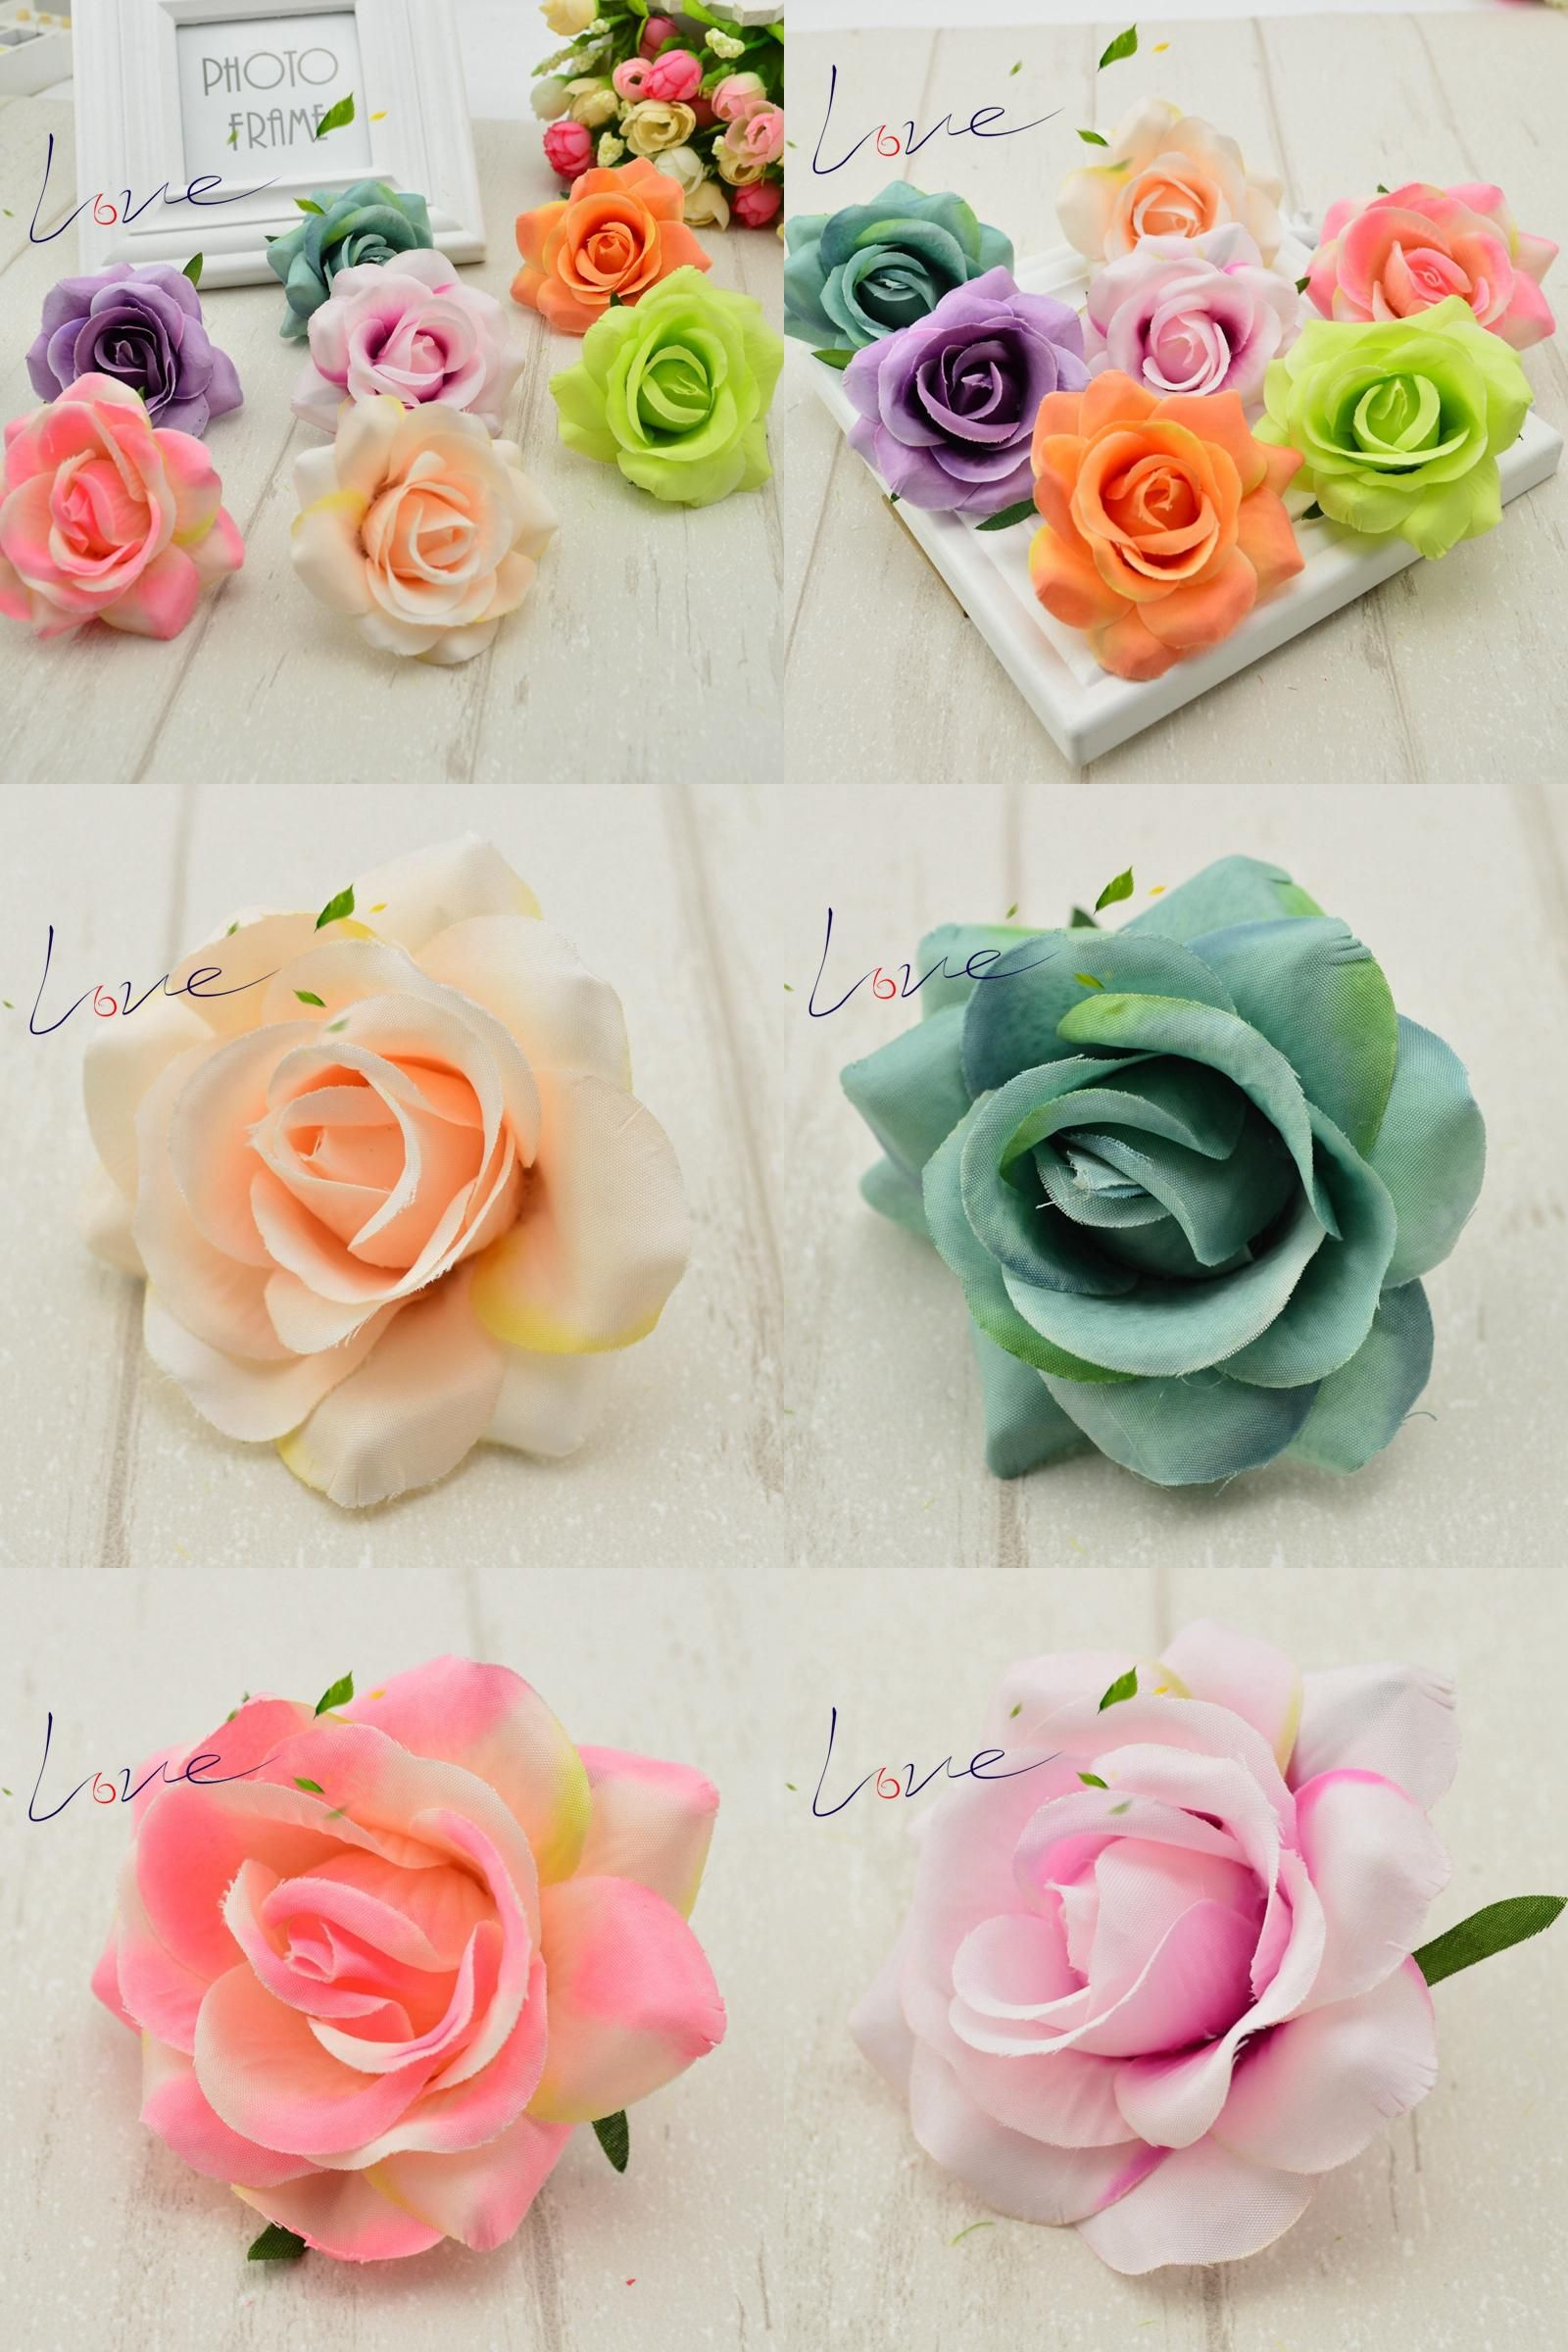 Visit to buy cheap artificial flower head flores art shoes hat visit to buy cheap artificial flower head flores art shoes hat family wedding izmirmasajfo Choice Image